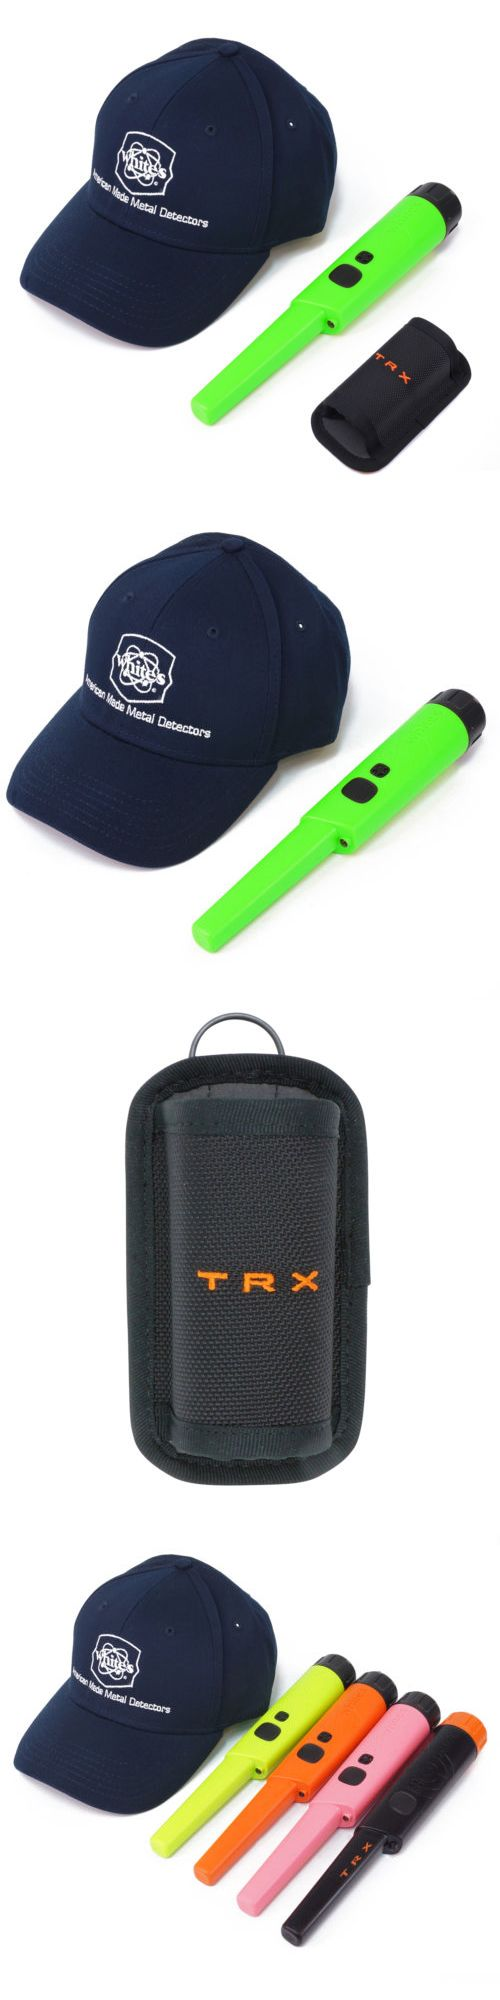 Metal Detectors: Whites Bullseye Trx Pinpointer Pin Pointer Green W Holster And White S Navy Hat -> BUY IT NOW ONLY: $149.95 on eBay!